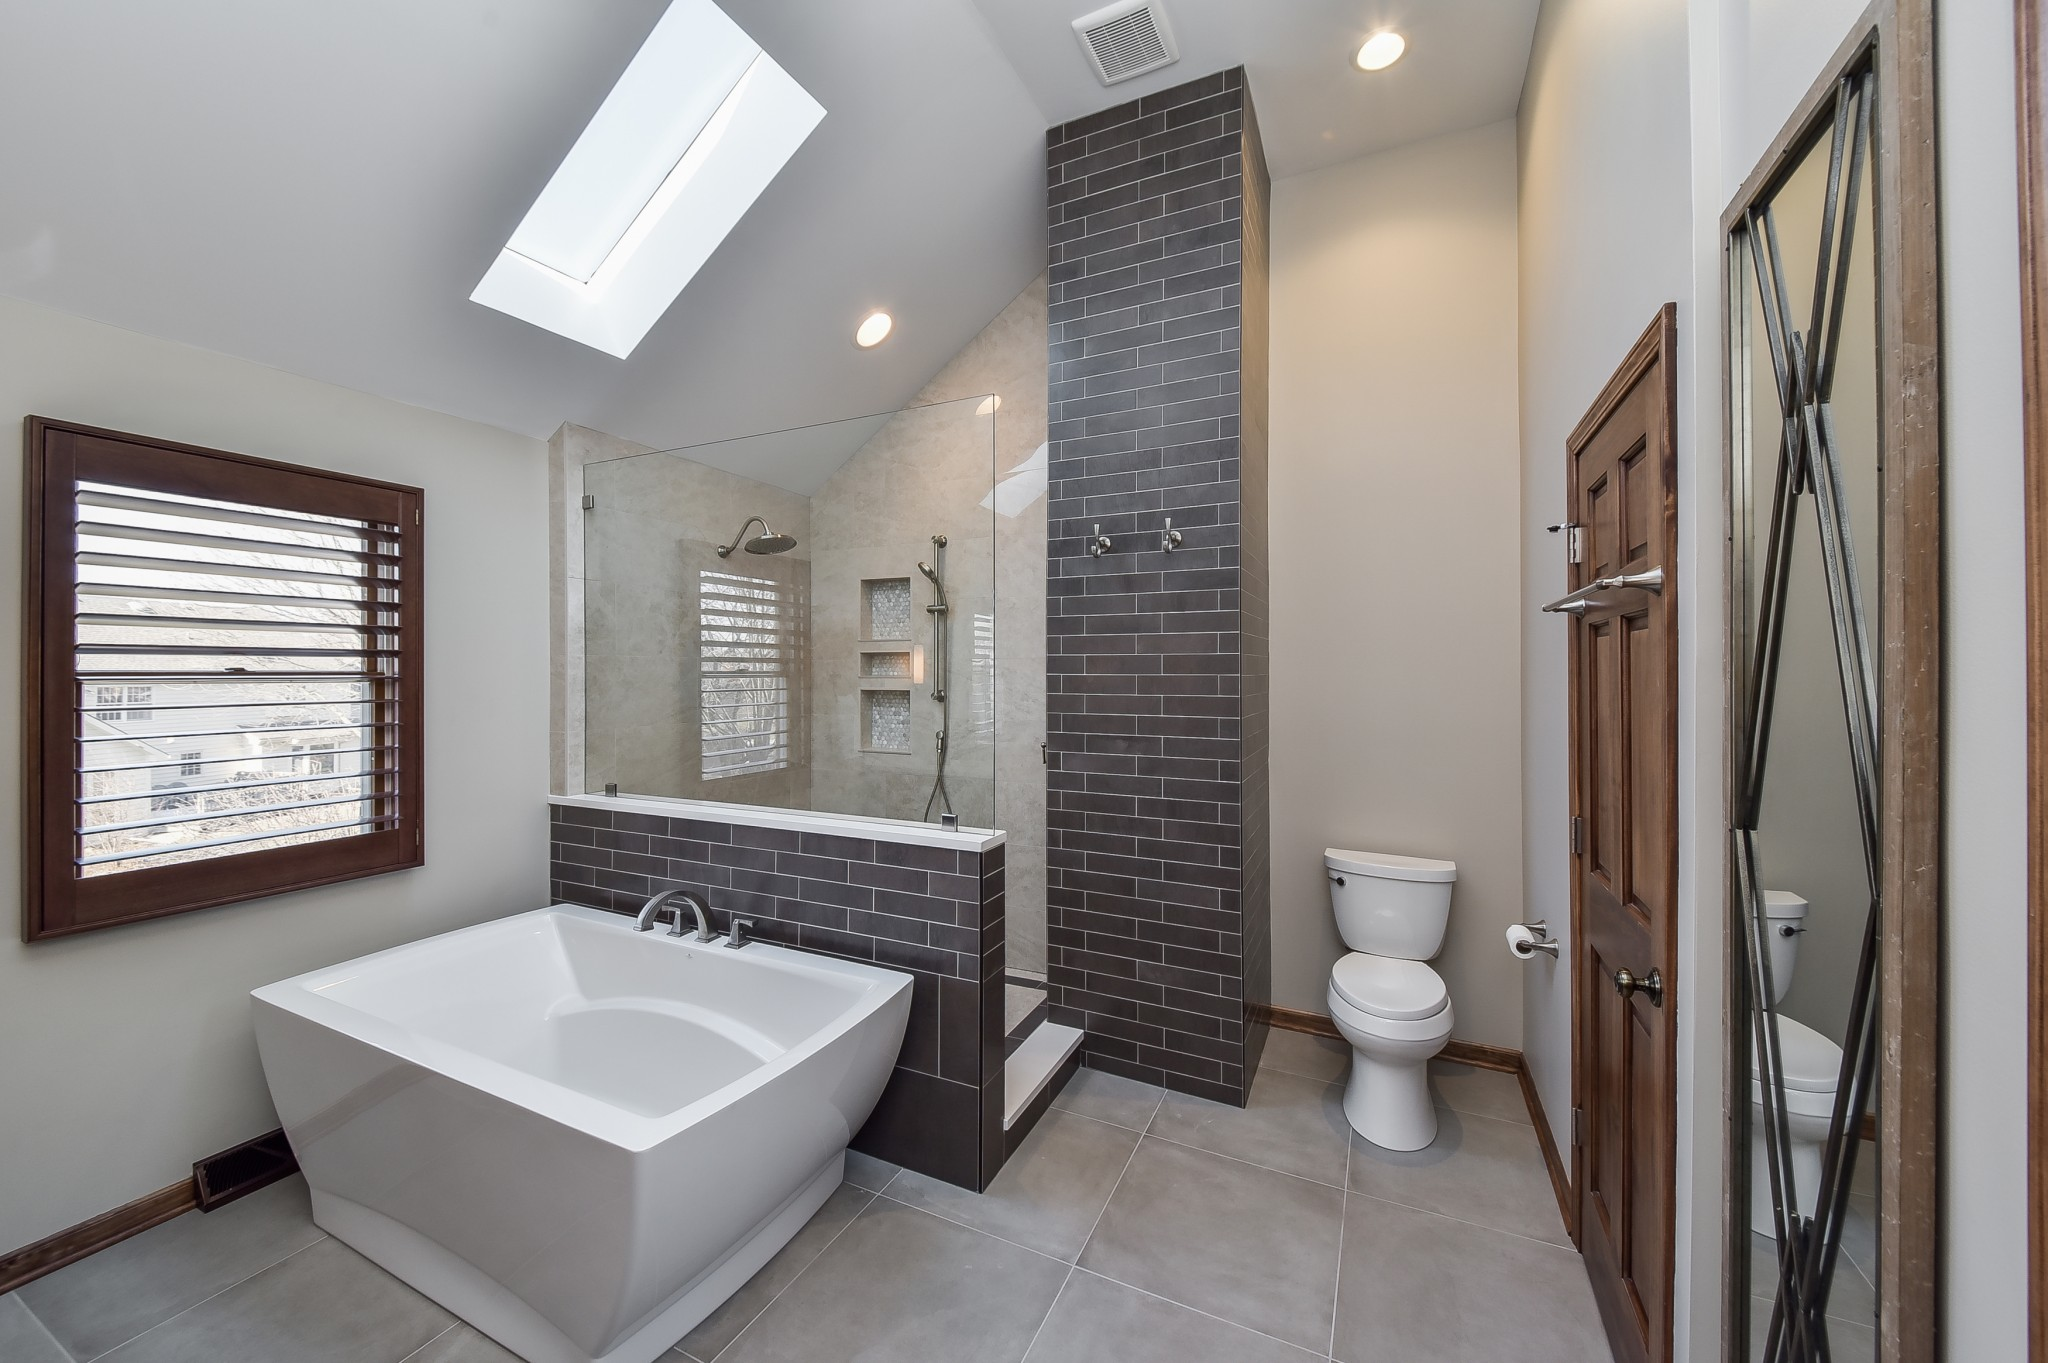 14 Bathroom Design Trends For 2020 Home Remodeling Contractors Sebring Design Build